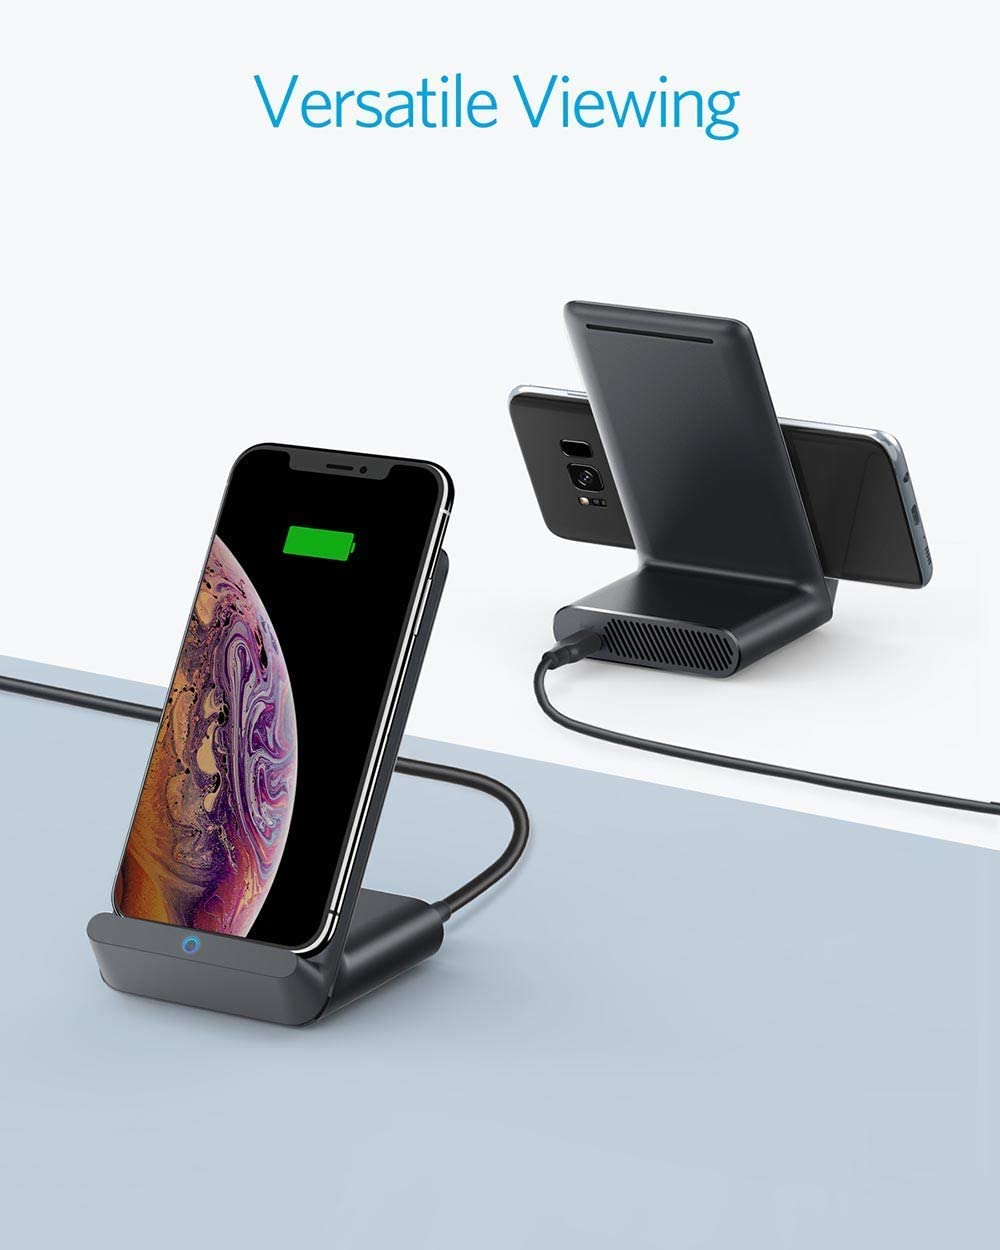 with Quick Charge Adapter Renewed Qi-Certified, / Anker PowerWave 7.5 Fast Wireless Charging Stand with Internal Cooling Fan /